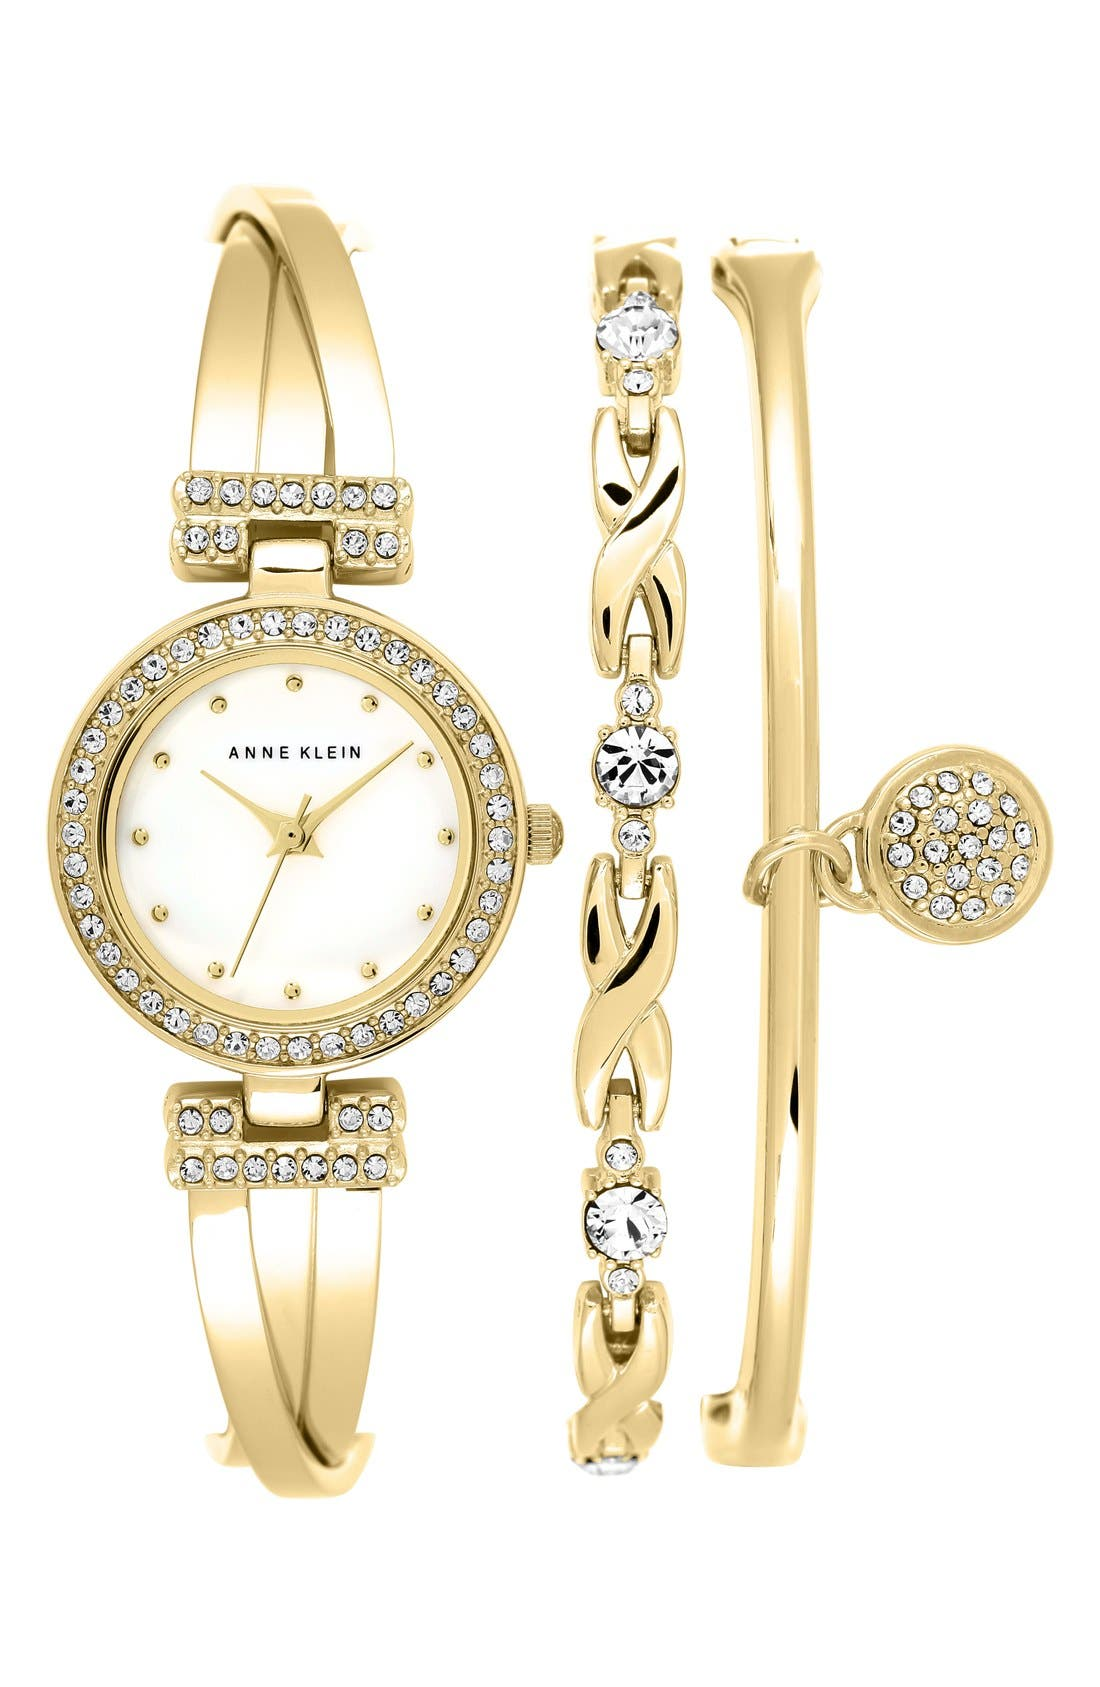 ANNE KLEIN Watch & Bangles Set, 24Mm in Gold